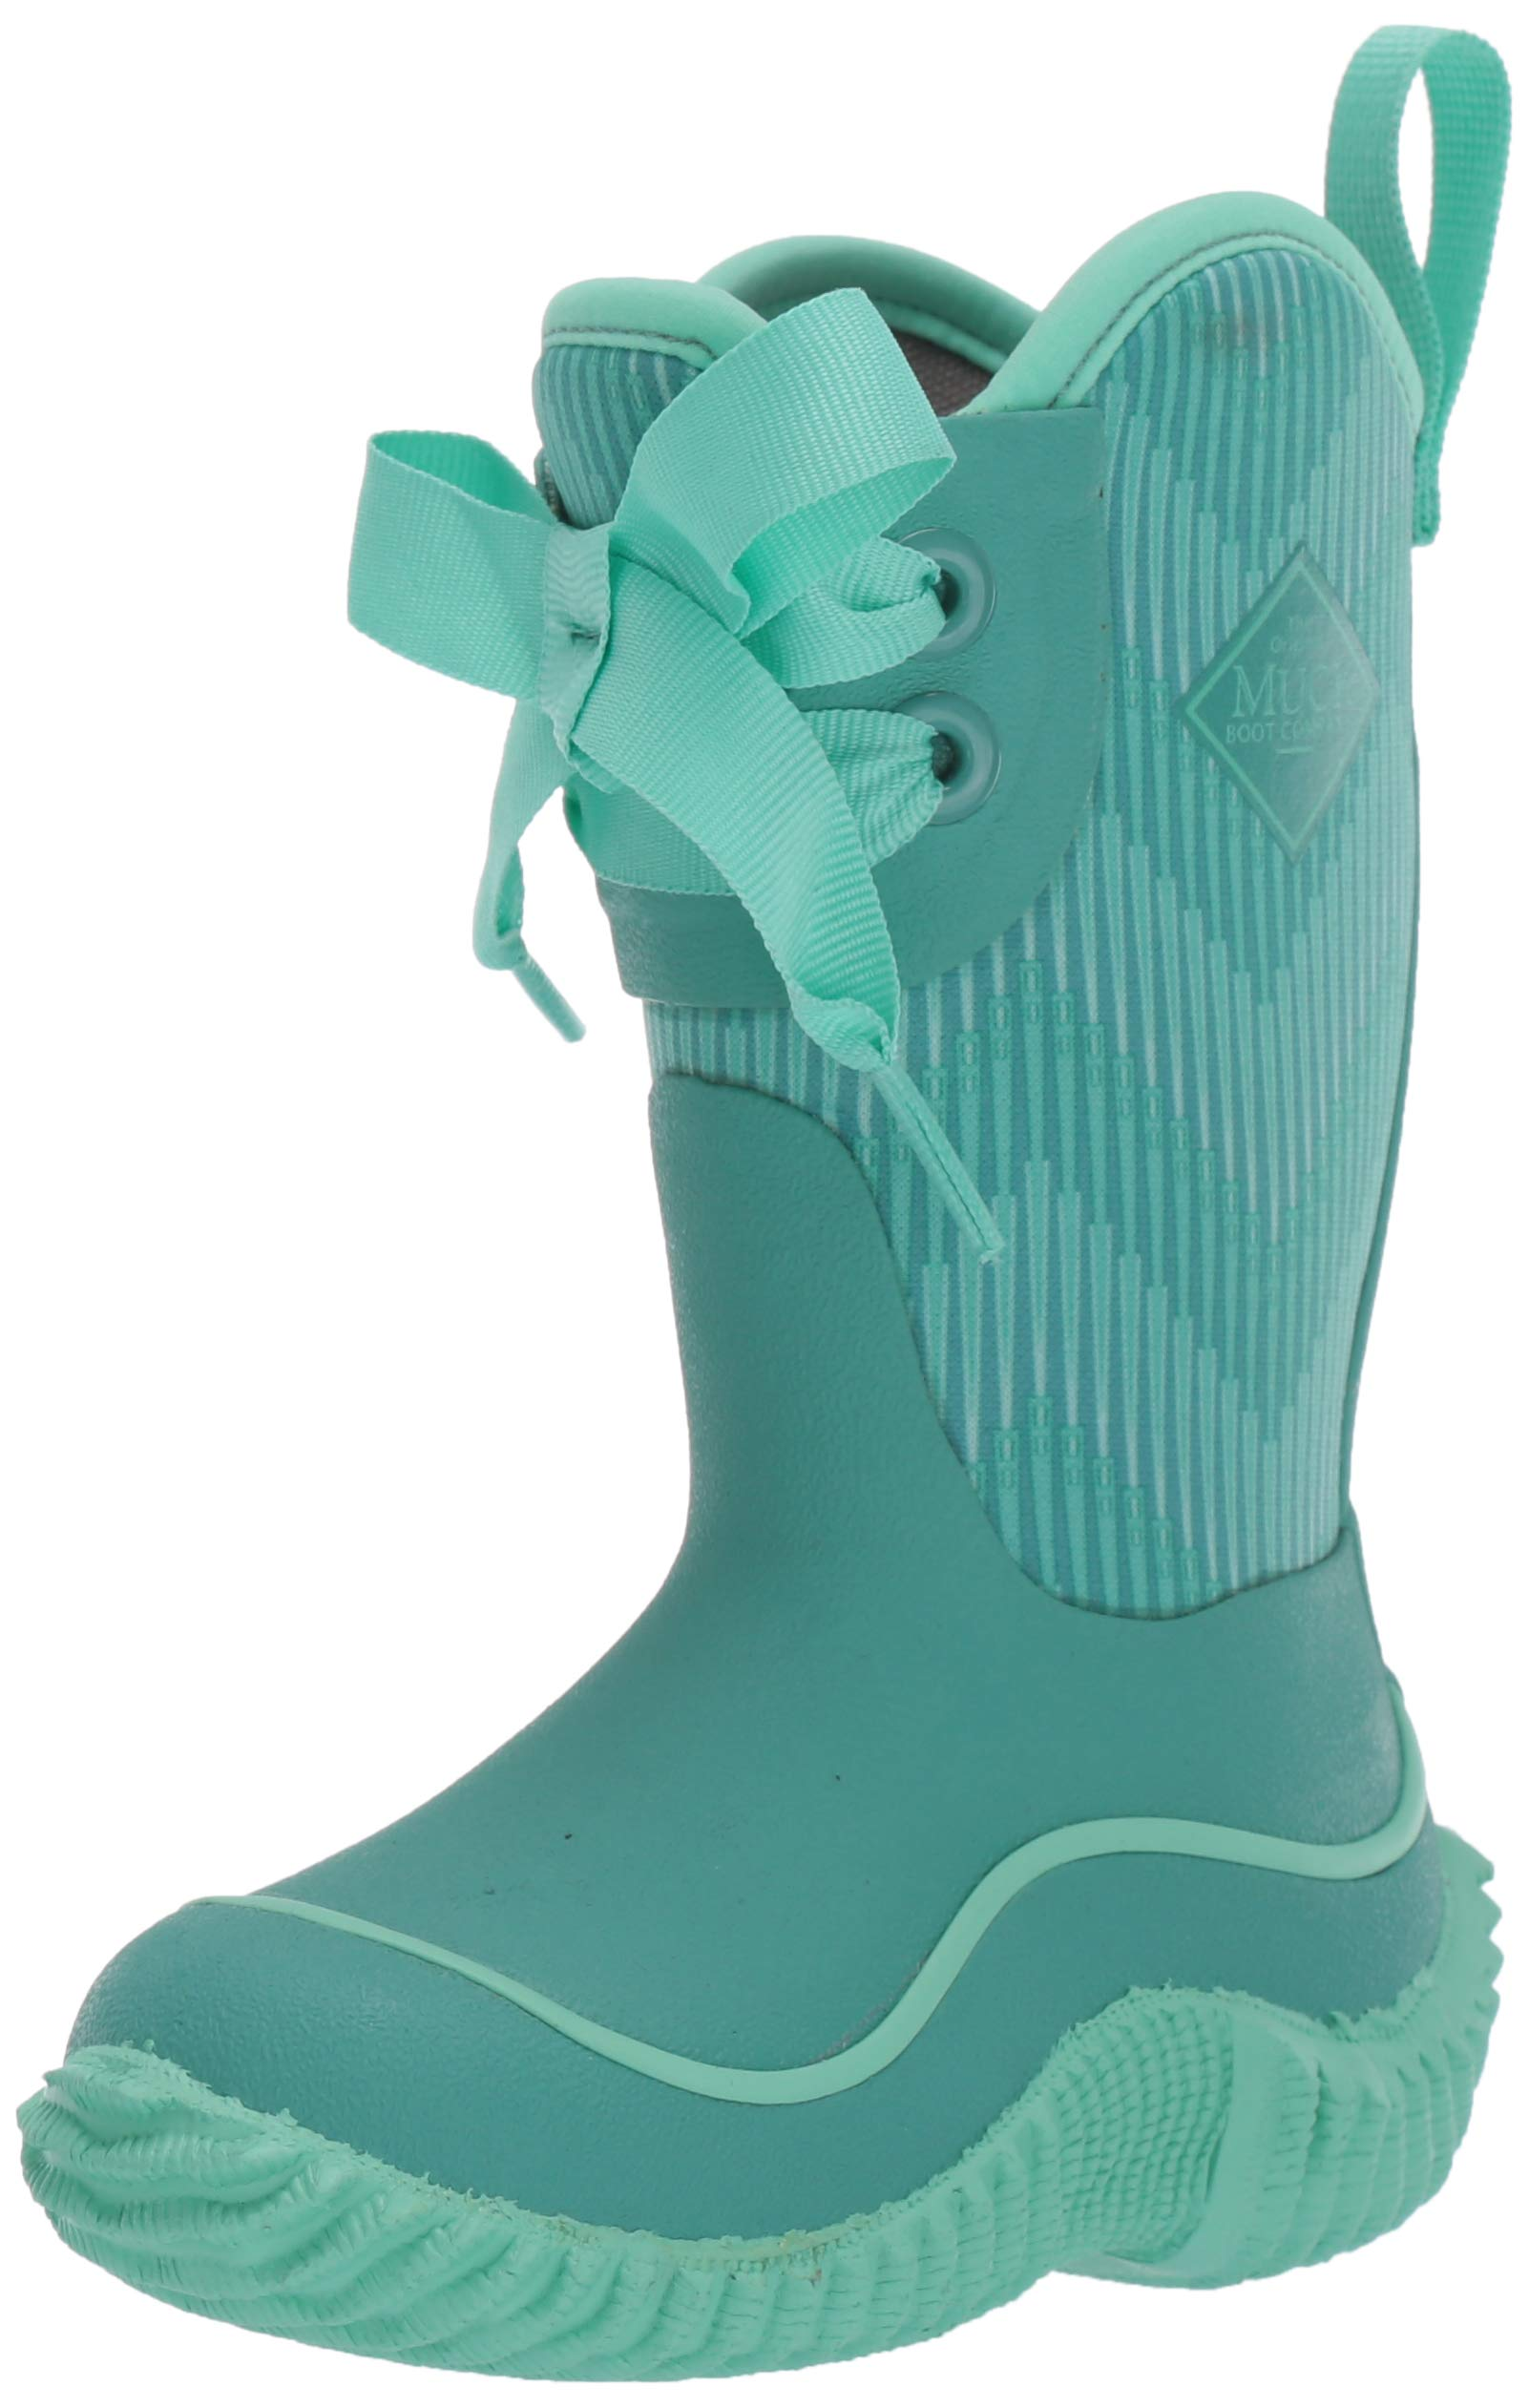 Muck Boot Unisex Halo Prints Knee High Boot, Blue Chevron, Youth 2 Regular US Big Kid by Muck Boot